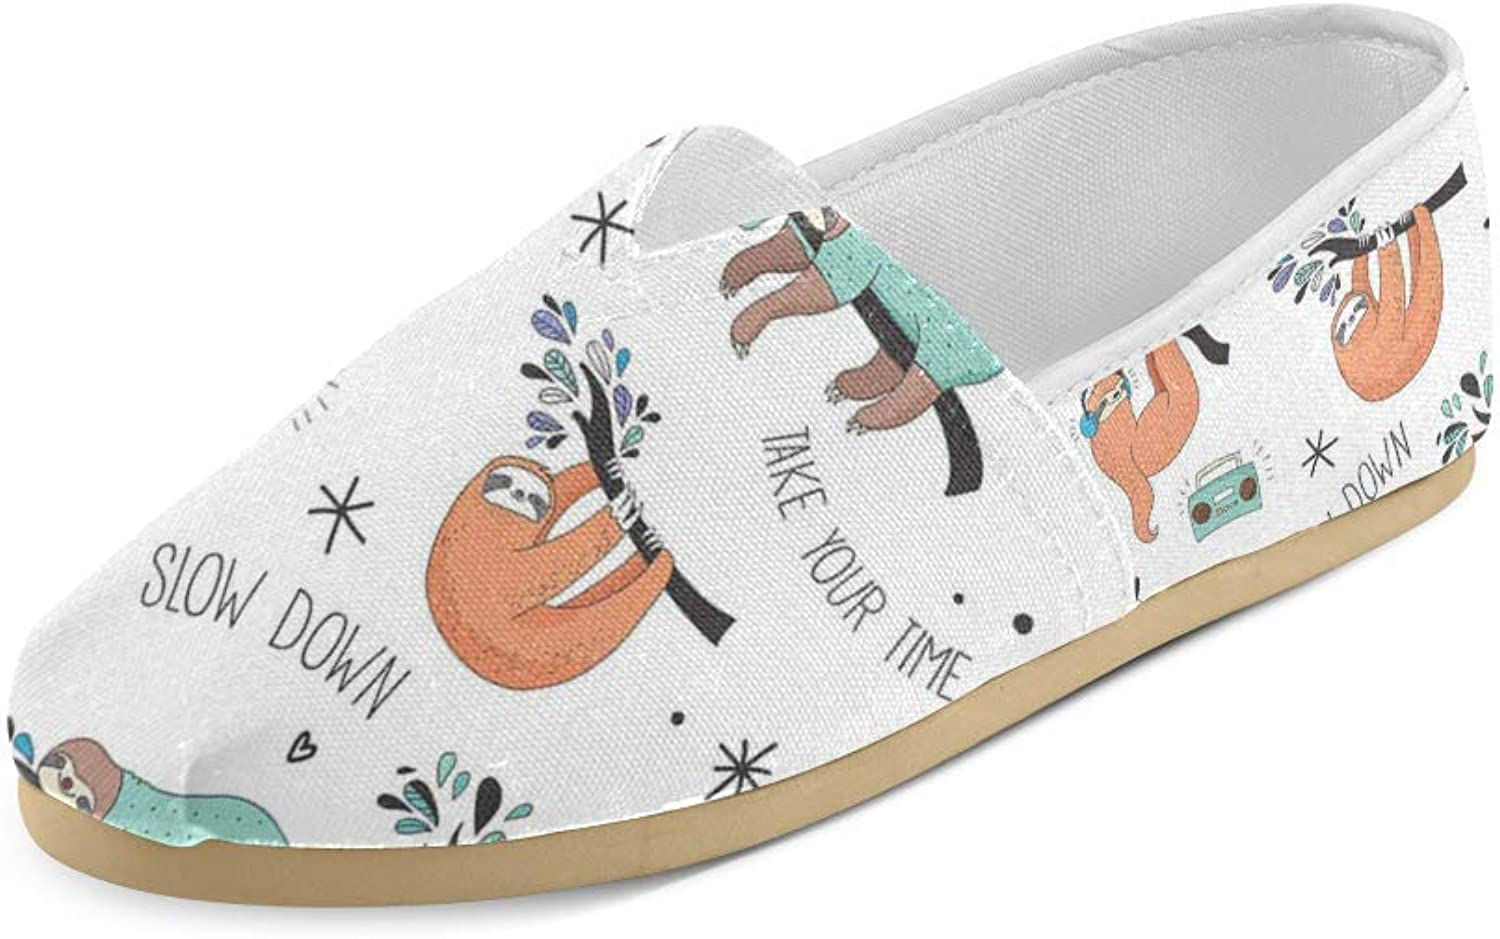 HUANGDAISY Unisex shoes Your Time Slow Down Sloth Casual Canvas Loafers for Bia Kids Girl Or Men